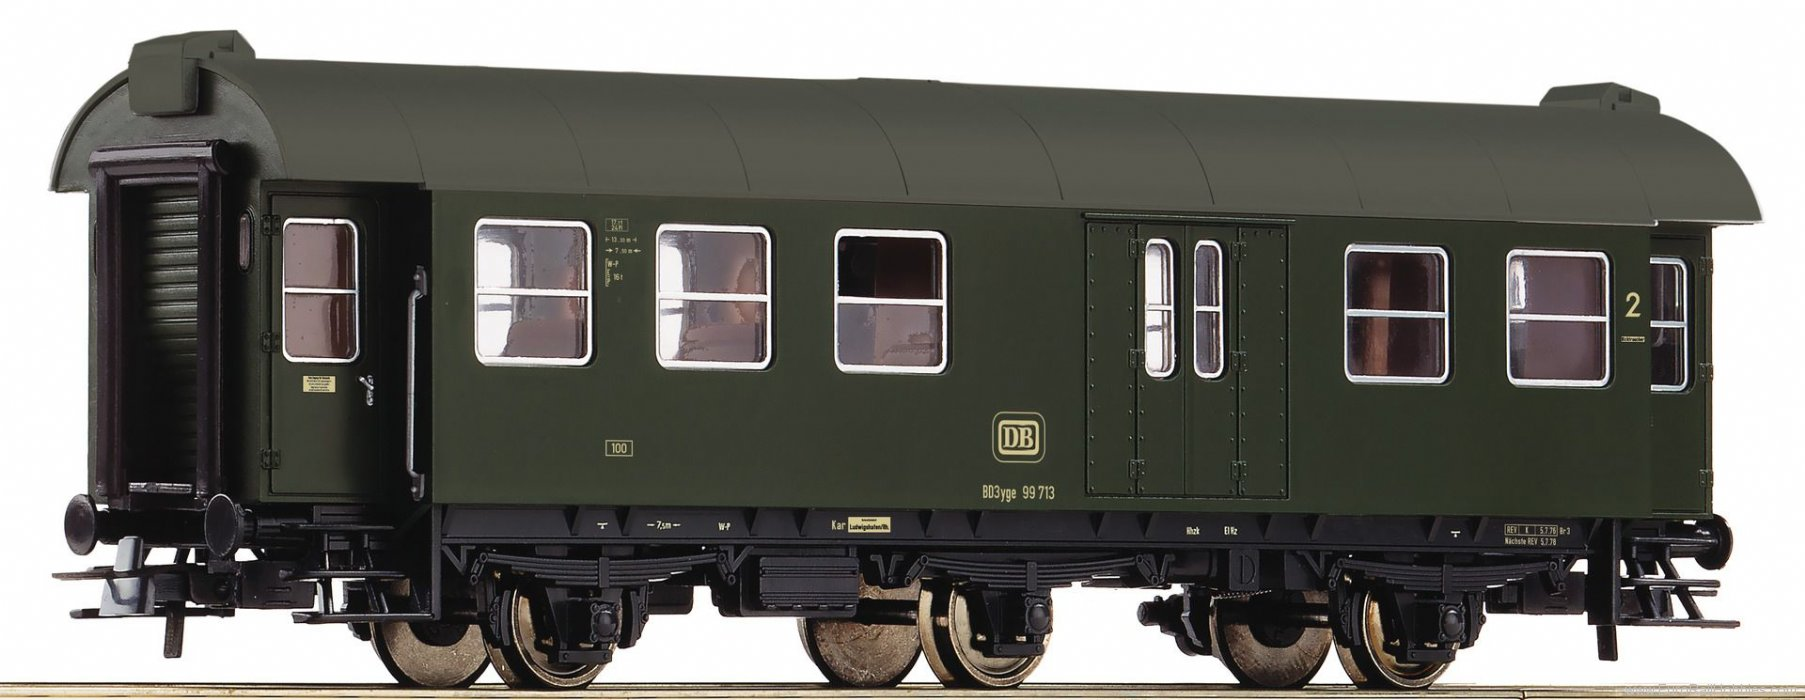 Roco 54293 2nd class passenger car with luggage compartm